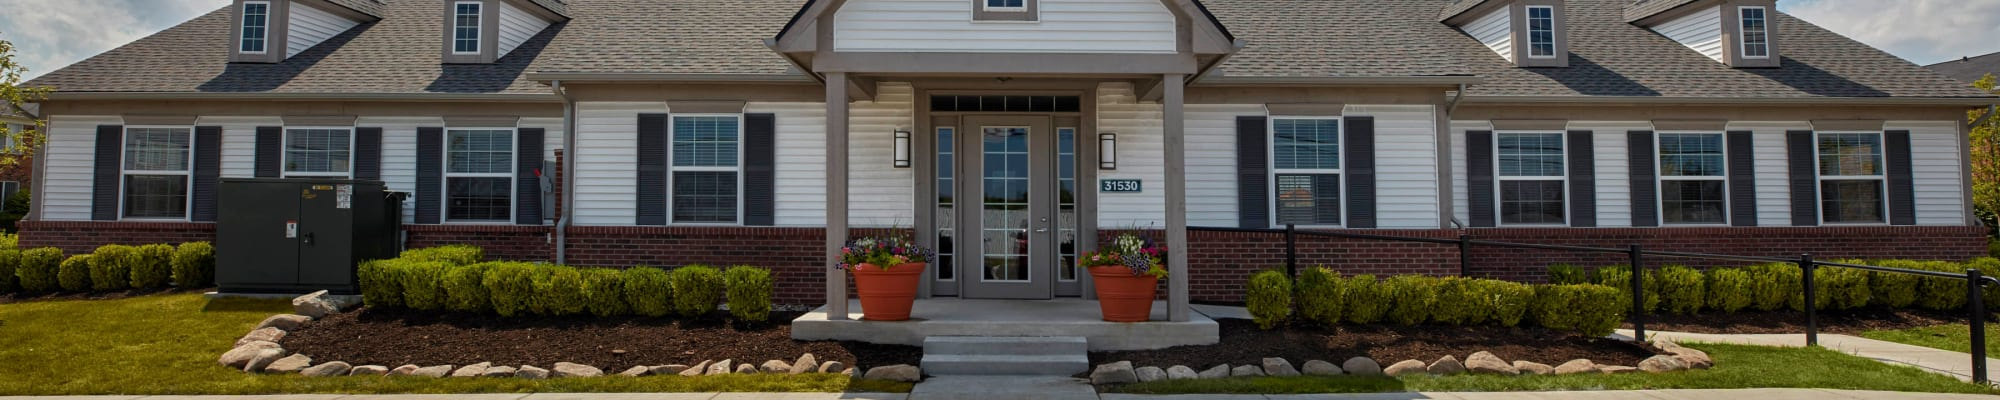 Schedule a tour to view Lexington Village Apartments in Madison Heights, Michigan